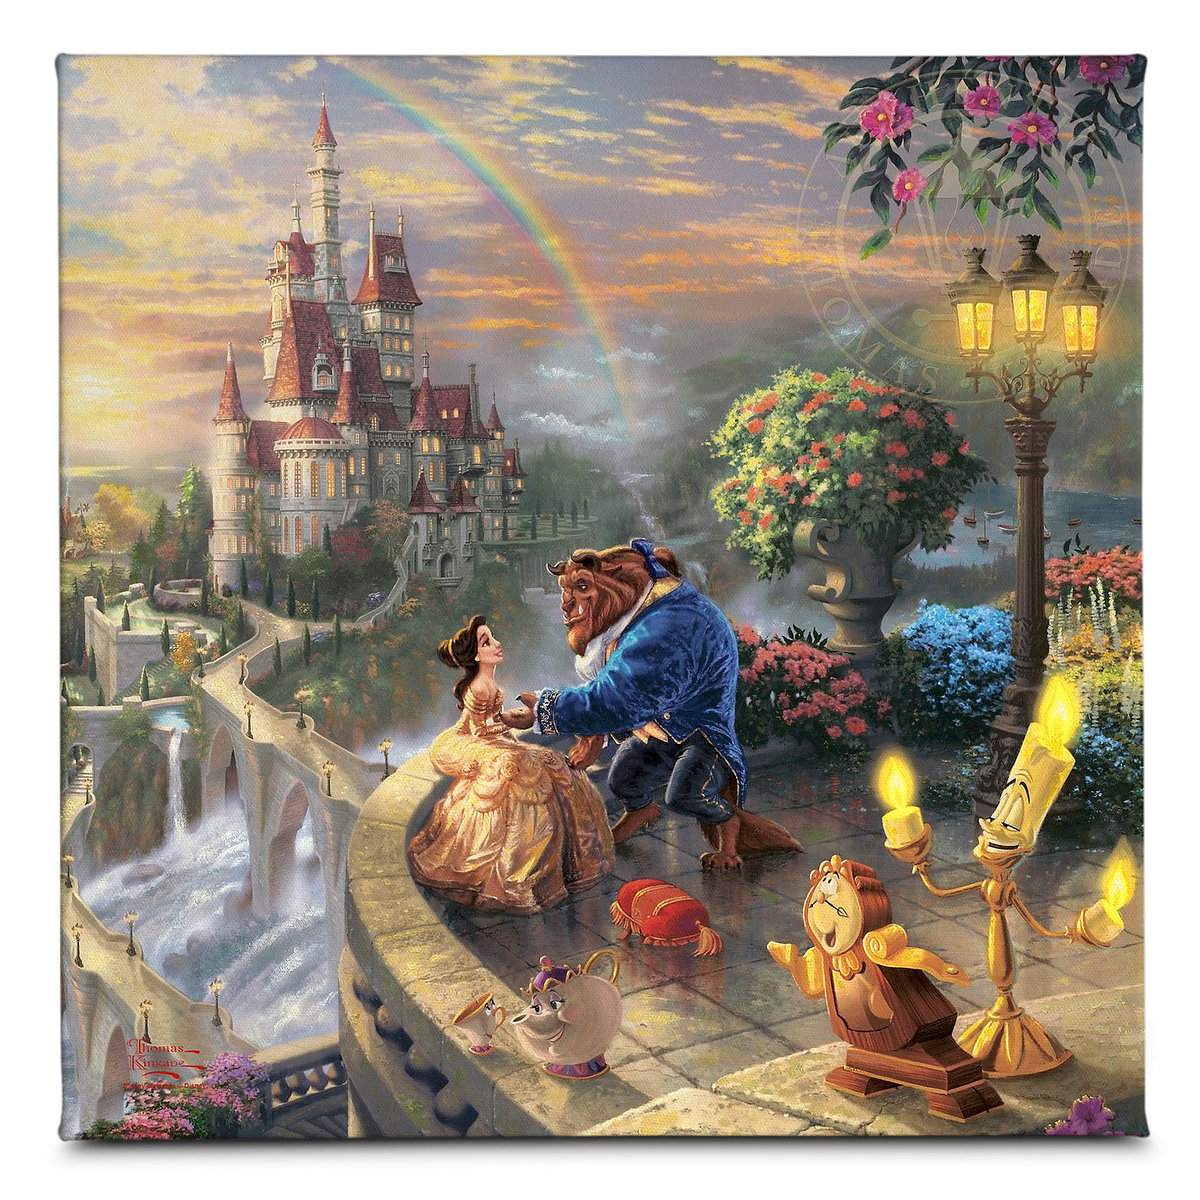 Beauty and the beast falling in love gallery wrapped canvas by thomas kinkade